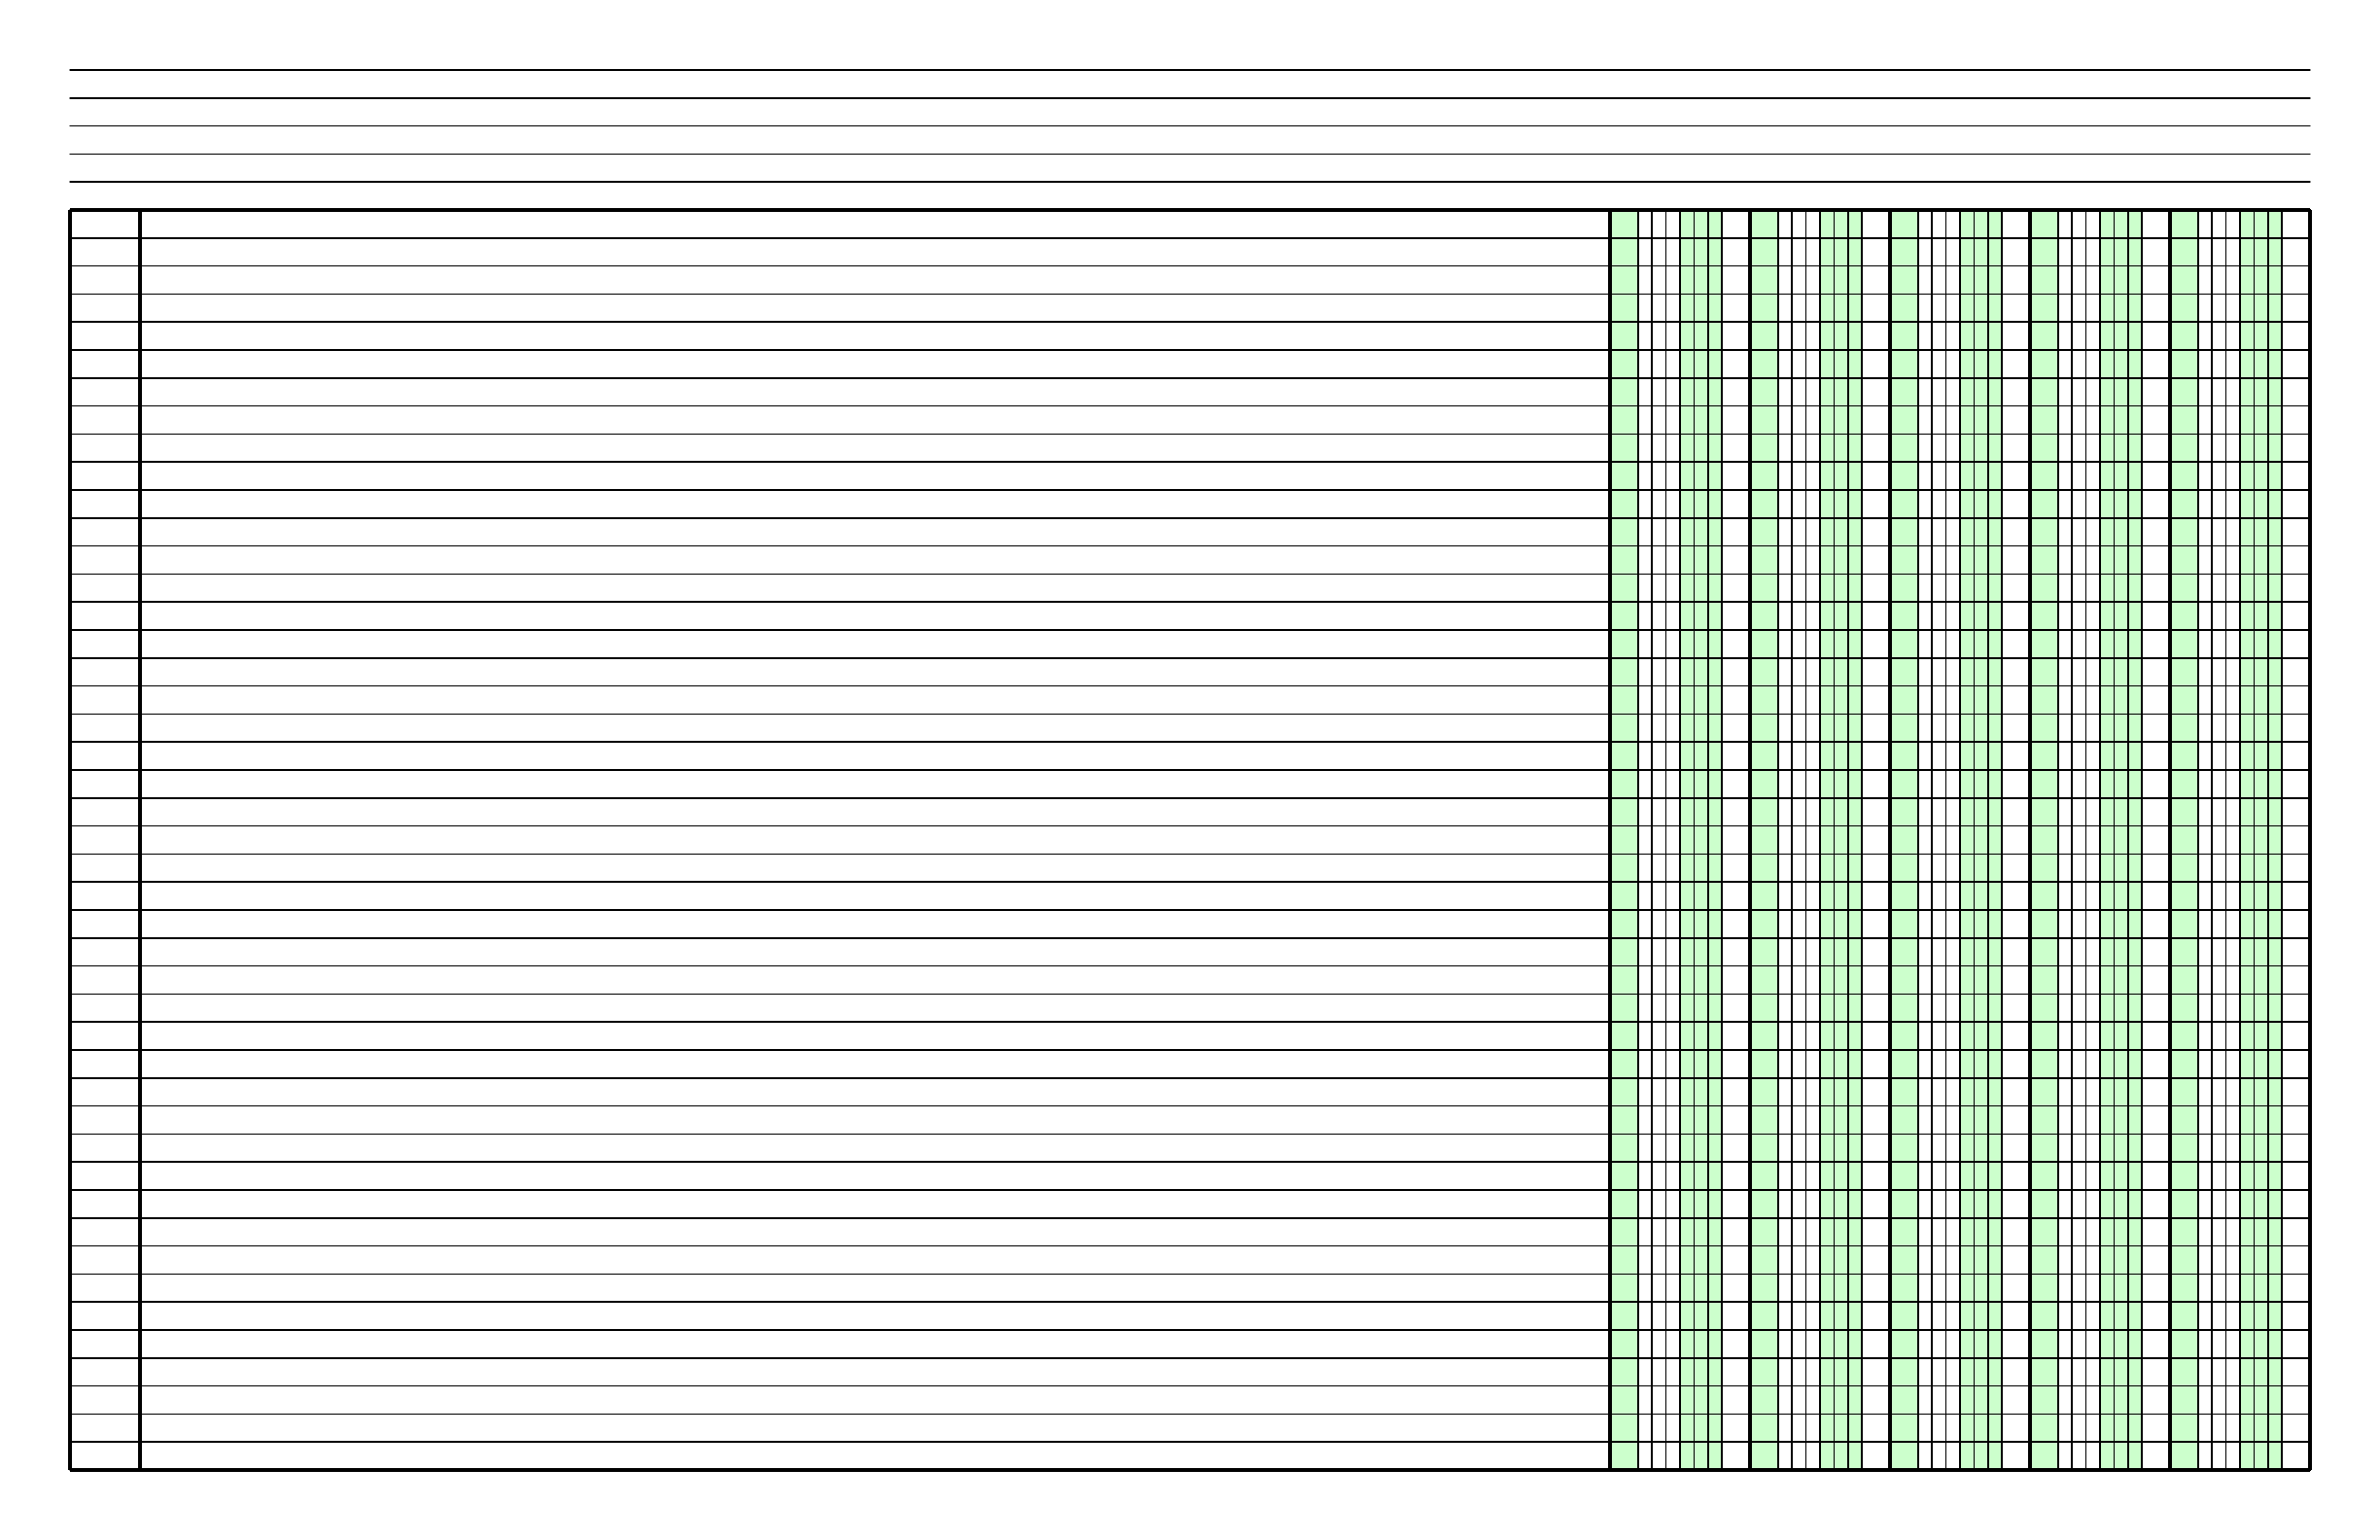 columnar paper with five columns on ledgersized paper in